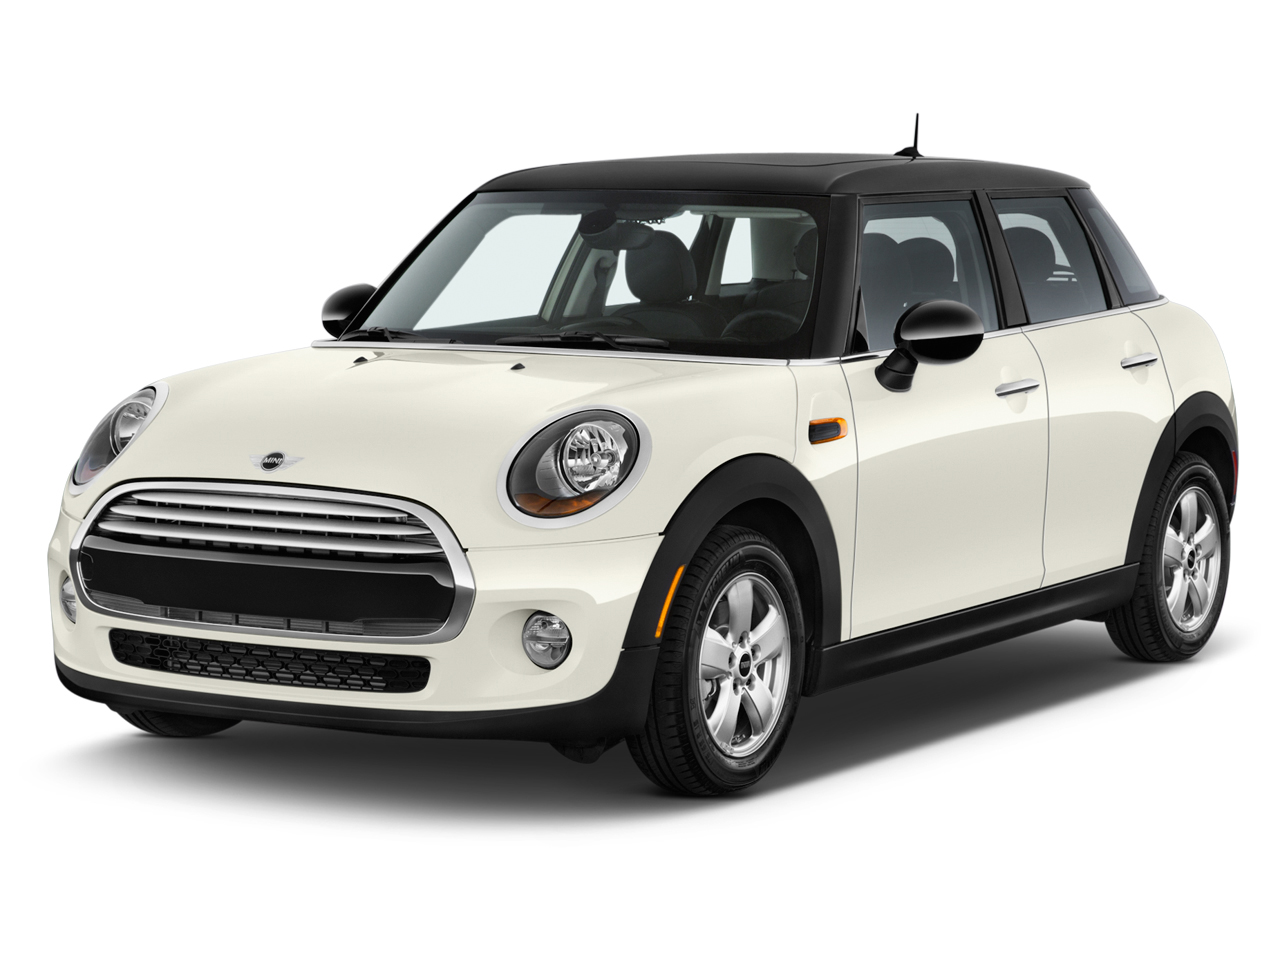 new and used mini cooper hardtop 4 door prices photos reviews specs the car connection. Black Bedroom Furniture Sets. Home Design Ideas